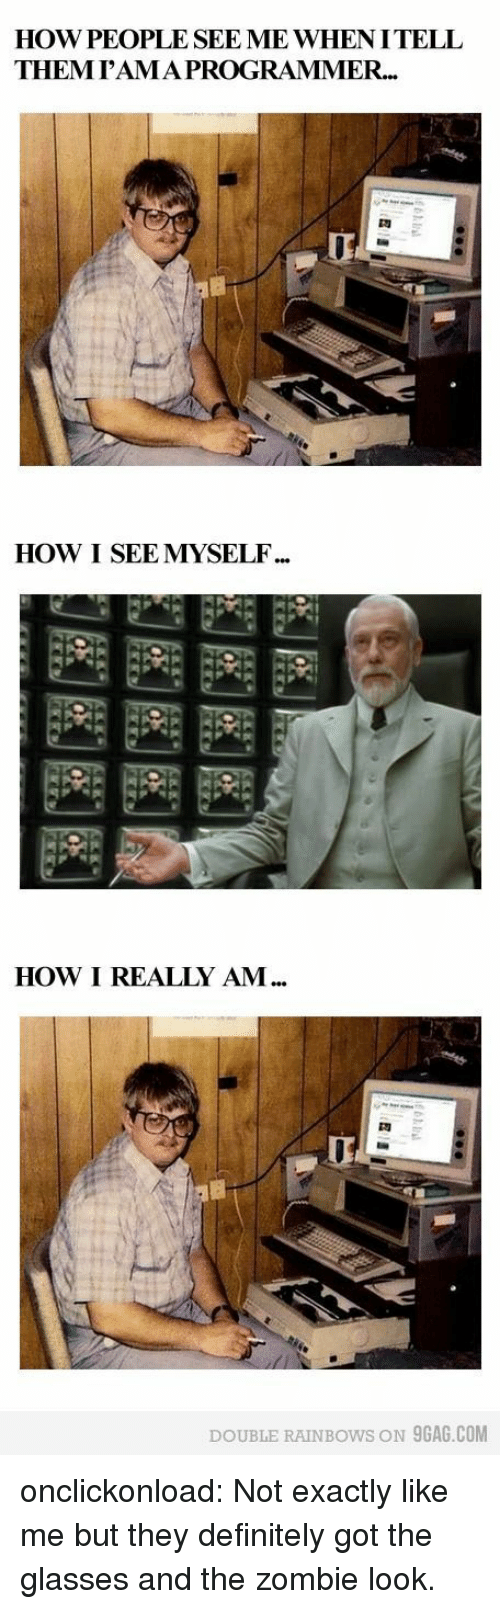 9gag, Definitely, and Tumblr: HOW PEOPLE SEE ME WHENITELL  THEMrAMAPROGRAMMER...  HOW I SEE MYSELF  囲囲囲  HOW I REALLY AM  DOUBLE RAINBOWS ON 9GAG.COM onclickonload:  Not exactly like me but they definitely got the glasses and the zombie look.